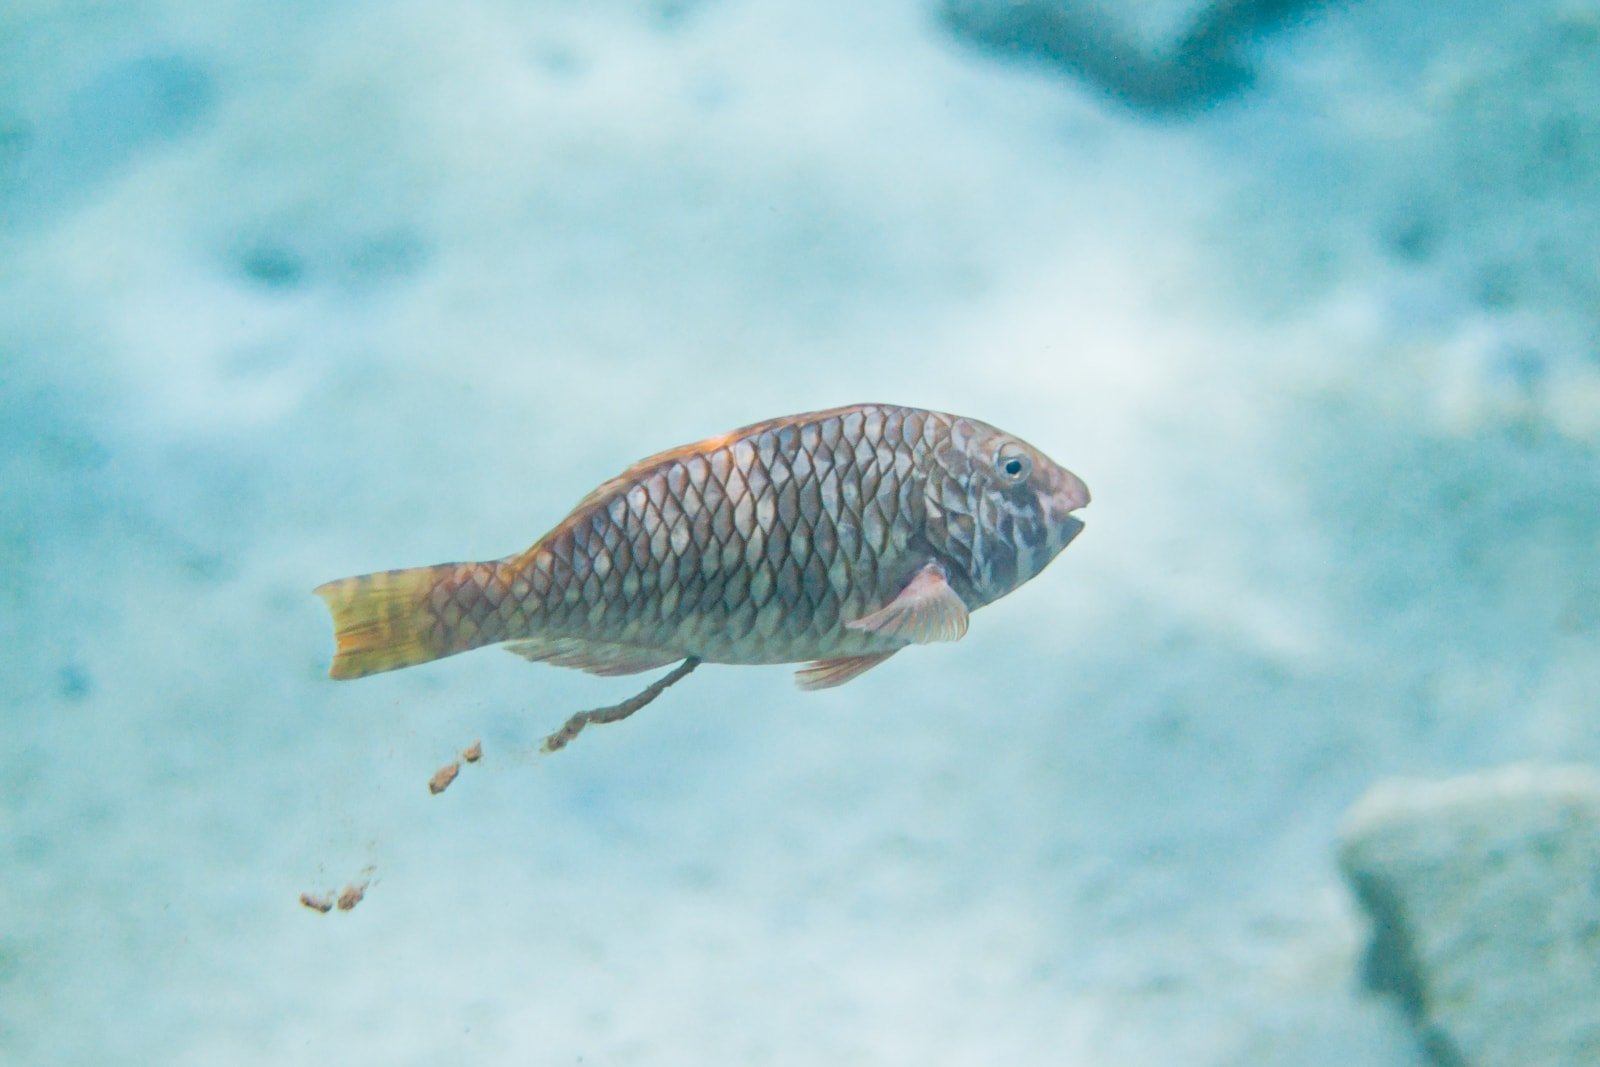 A fish taking a crap in the sea because of information overload.